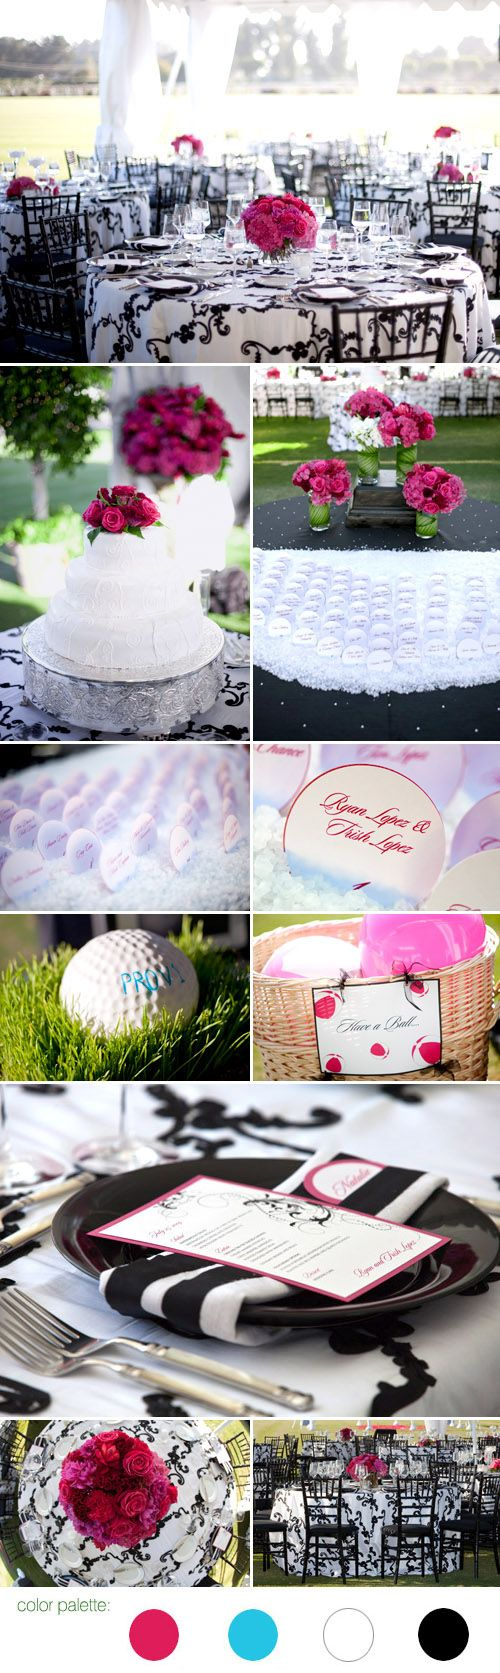 191 best Eventos images on Pinterest | Marriage, Parties and Ideas ...